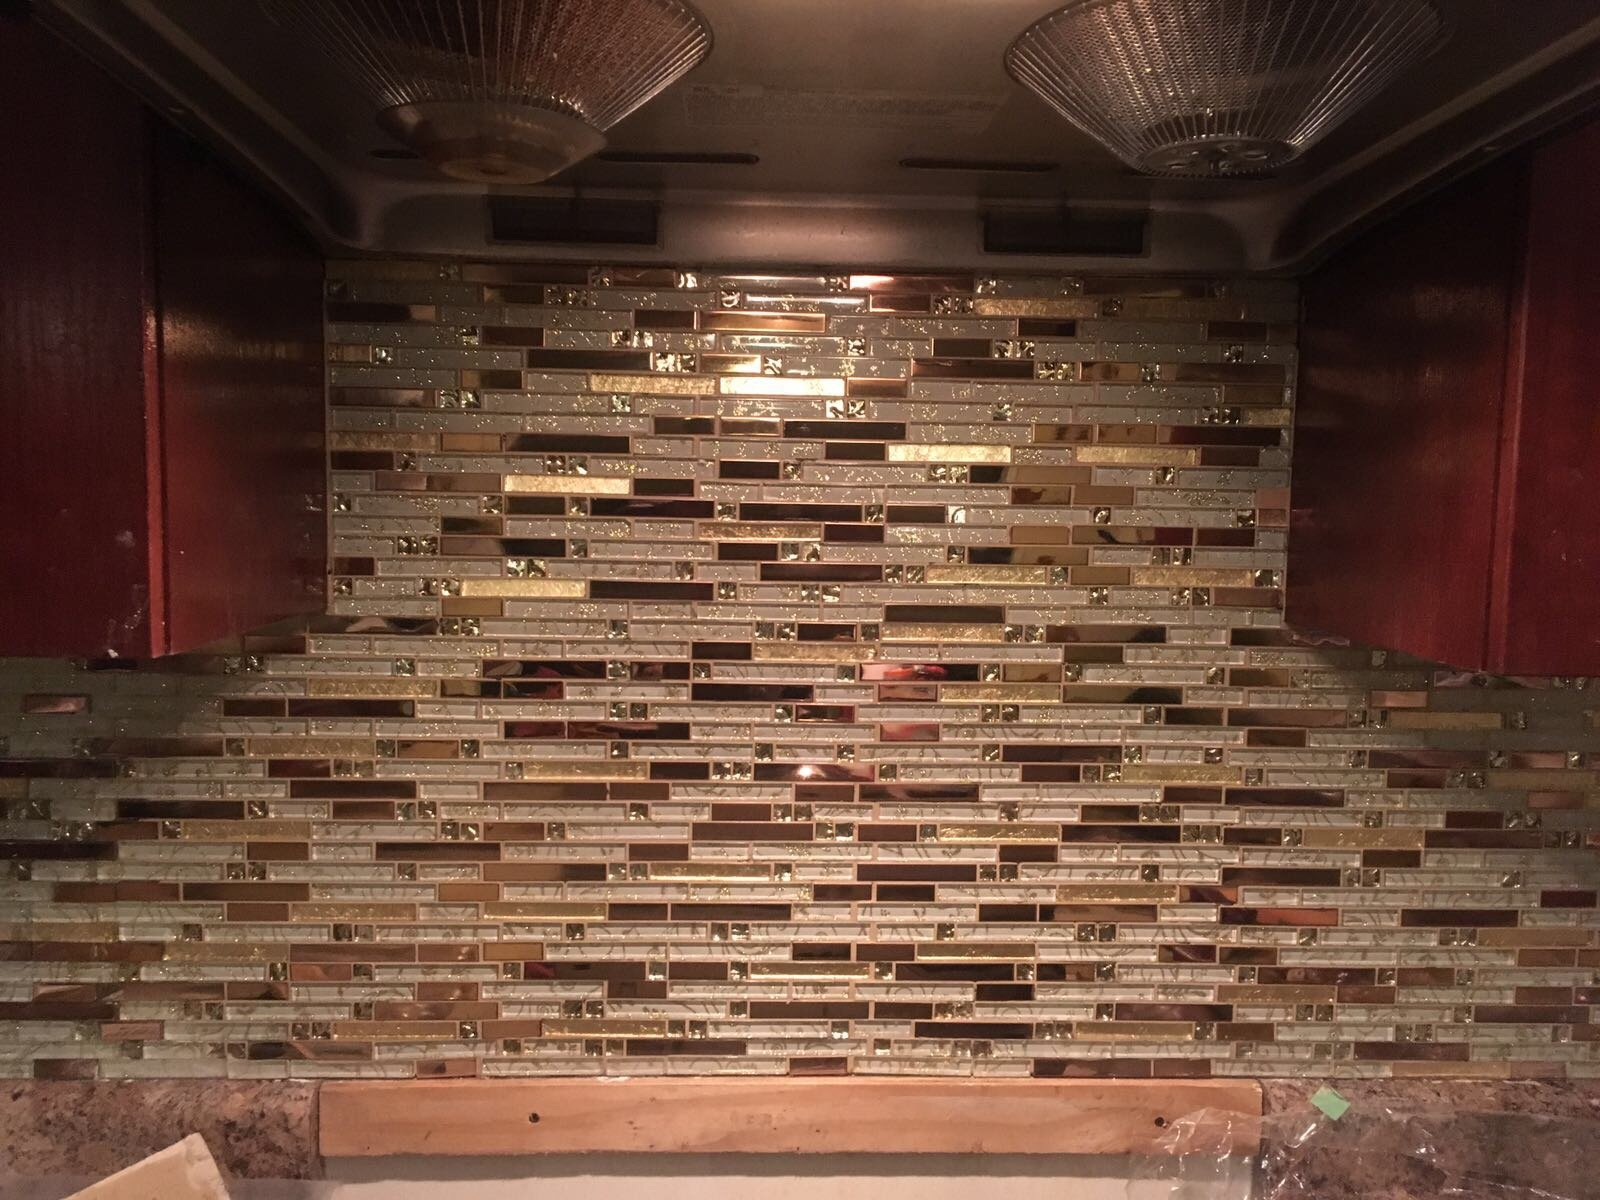 Luxury Rose Gold Stainless Steel And Foil Glass Linear Mosaic Tiles for Kitchen Backsplash/Bathroom decor,SA047-40 (Box of 10.76 sq ft) by LANDS GLASS METAL TILES (Image #5)